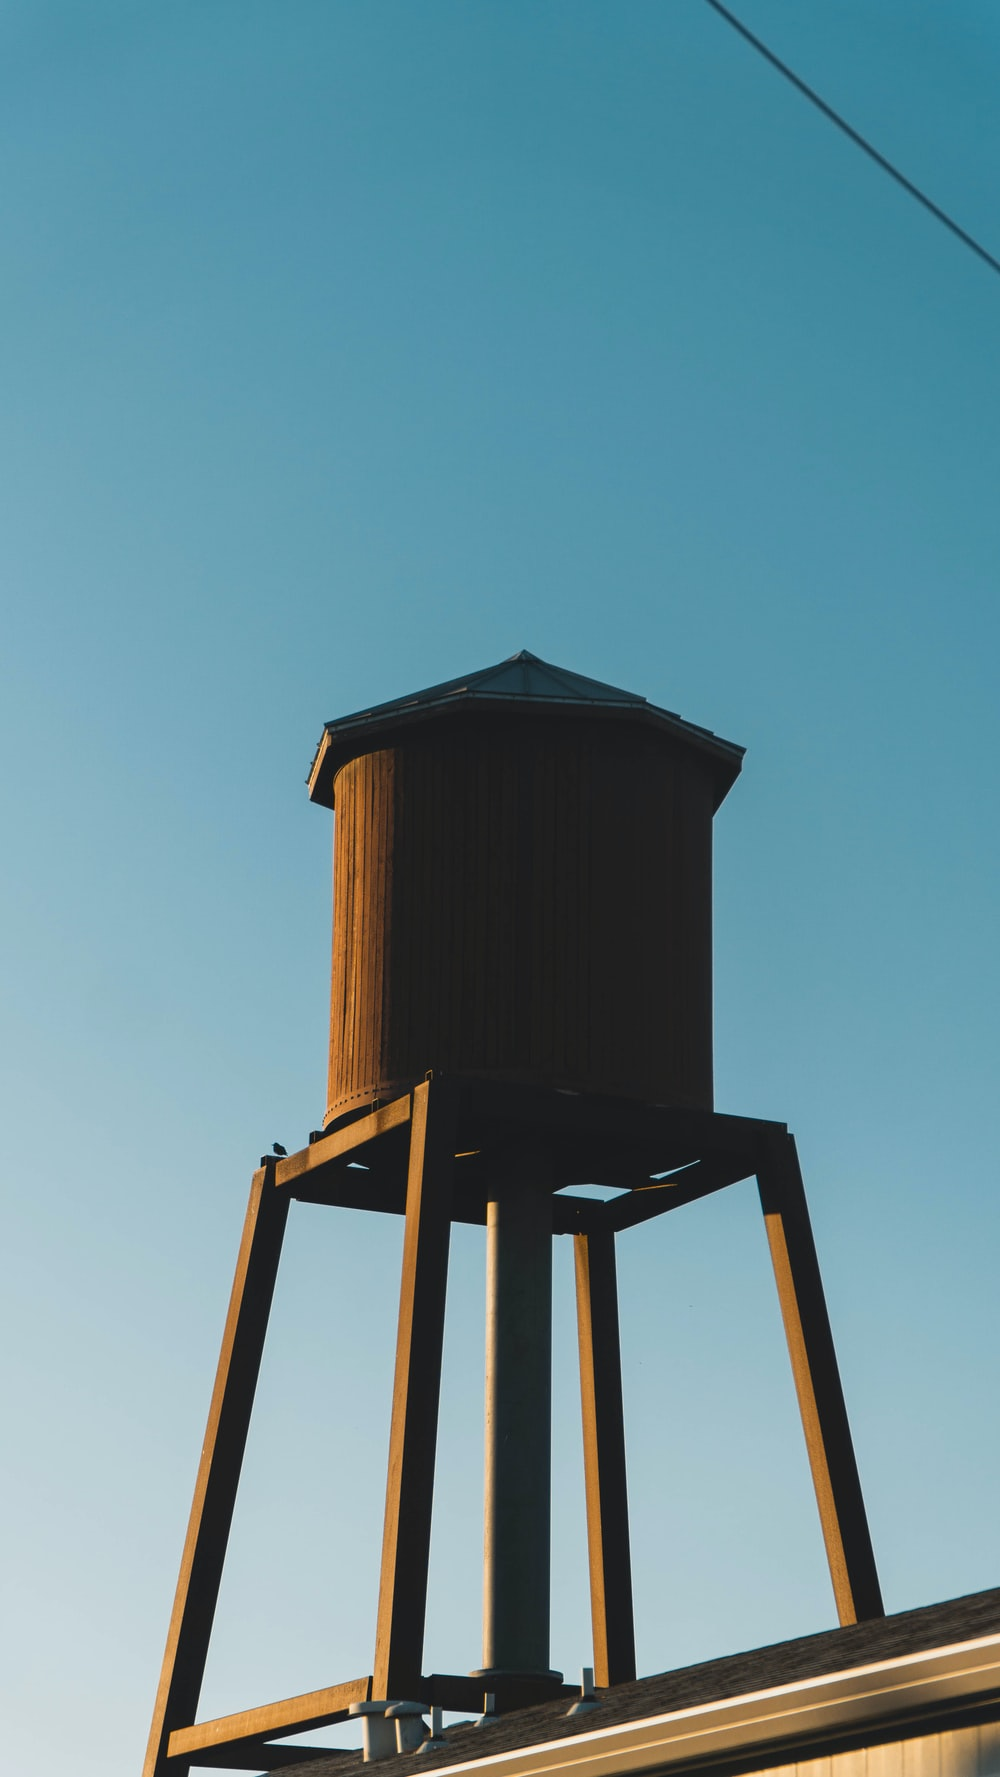 brown wooden tower under blue sky during daytime